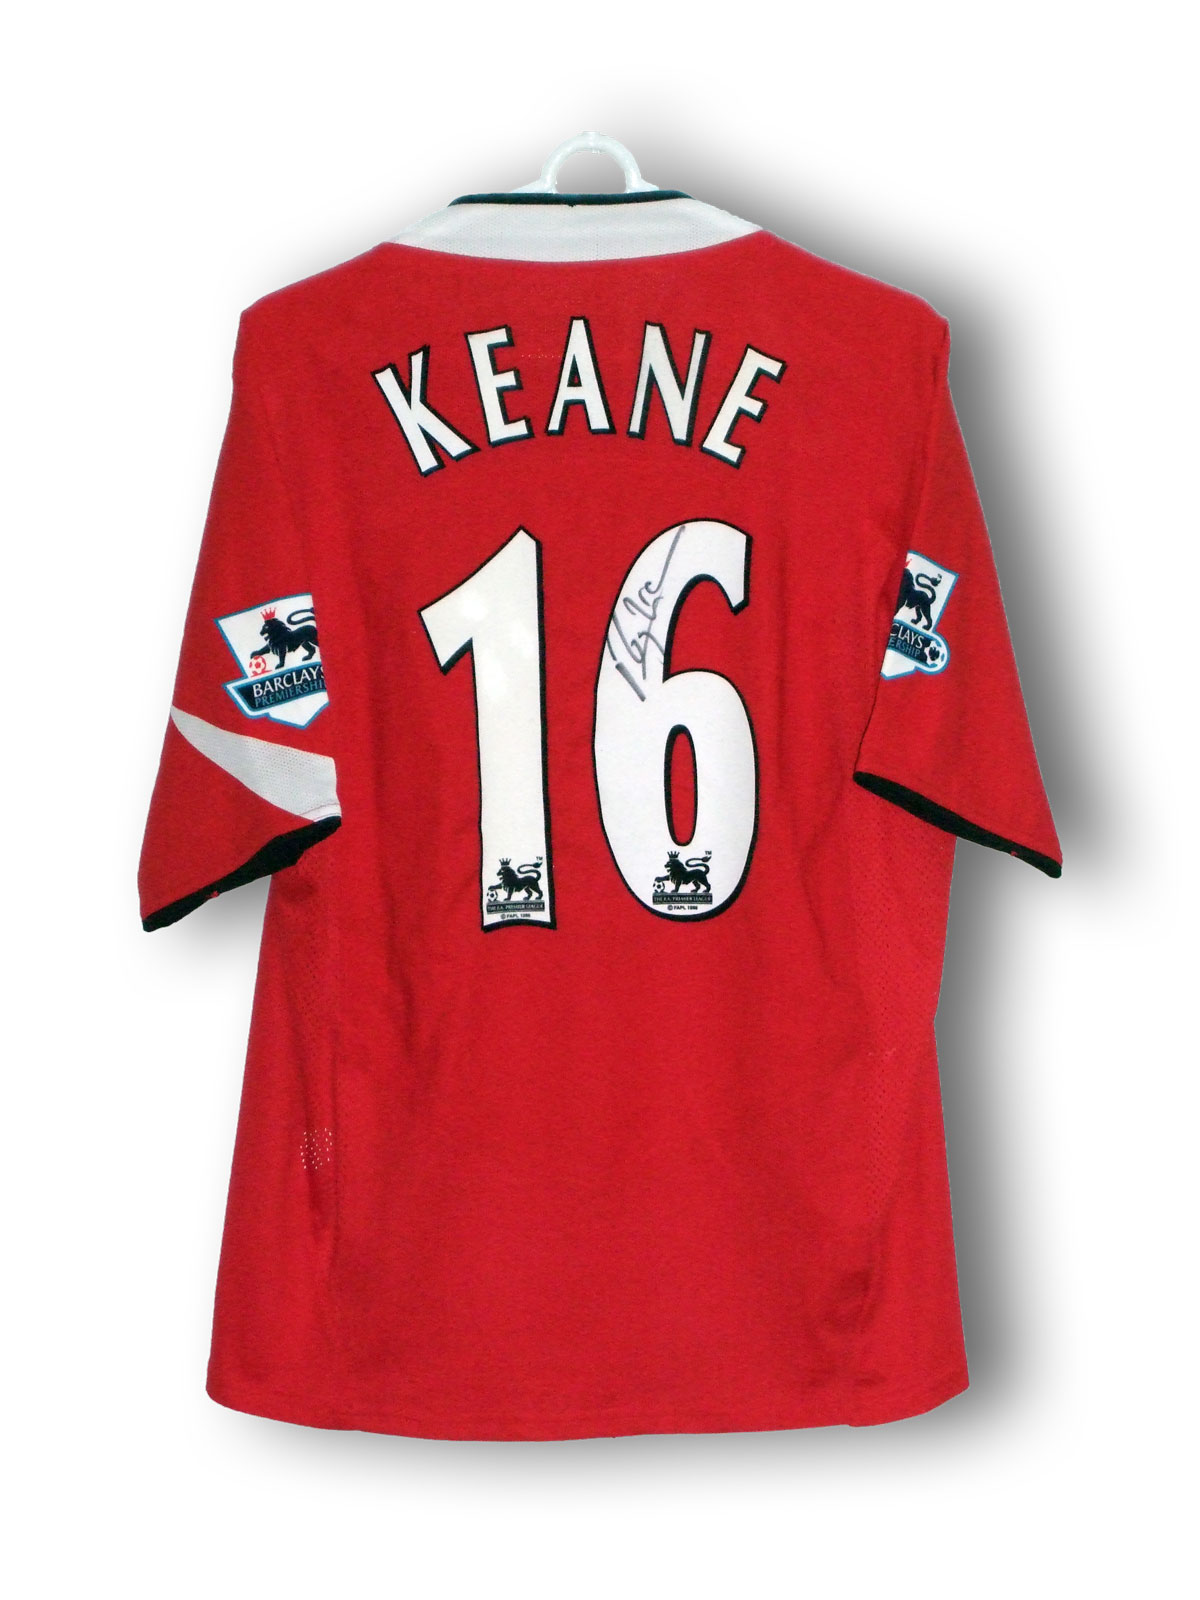 Keane_home_2004_back